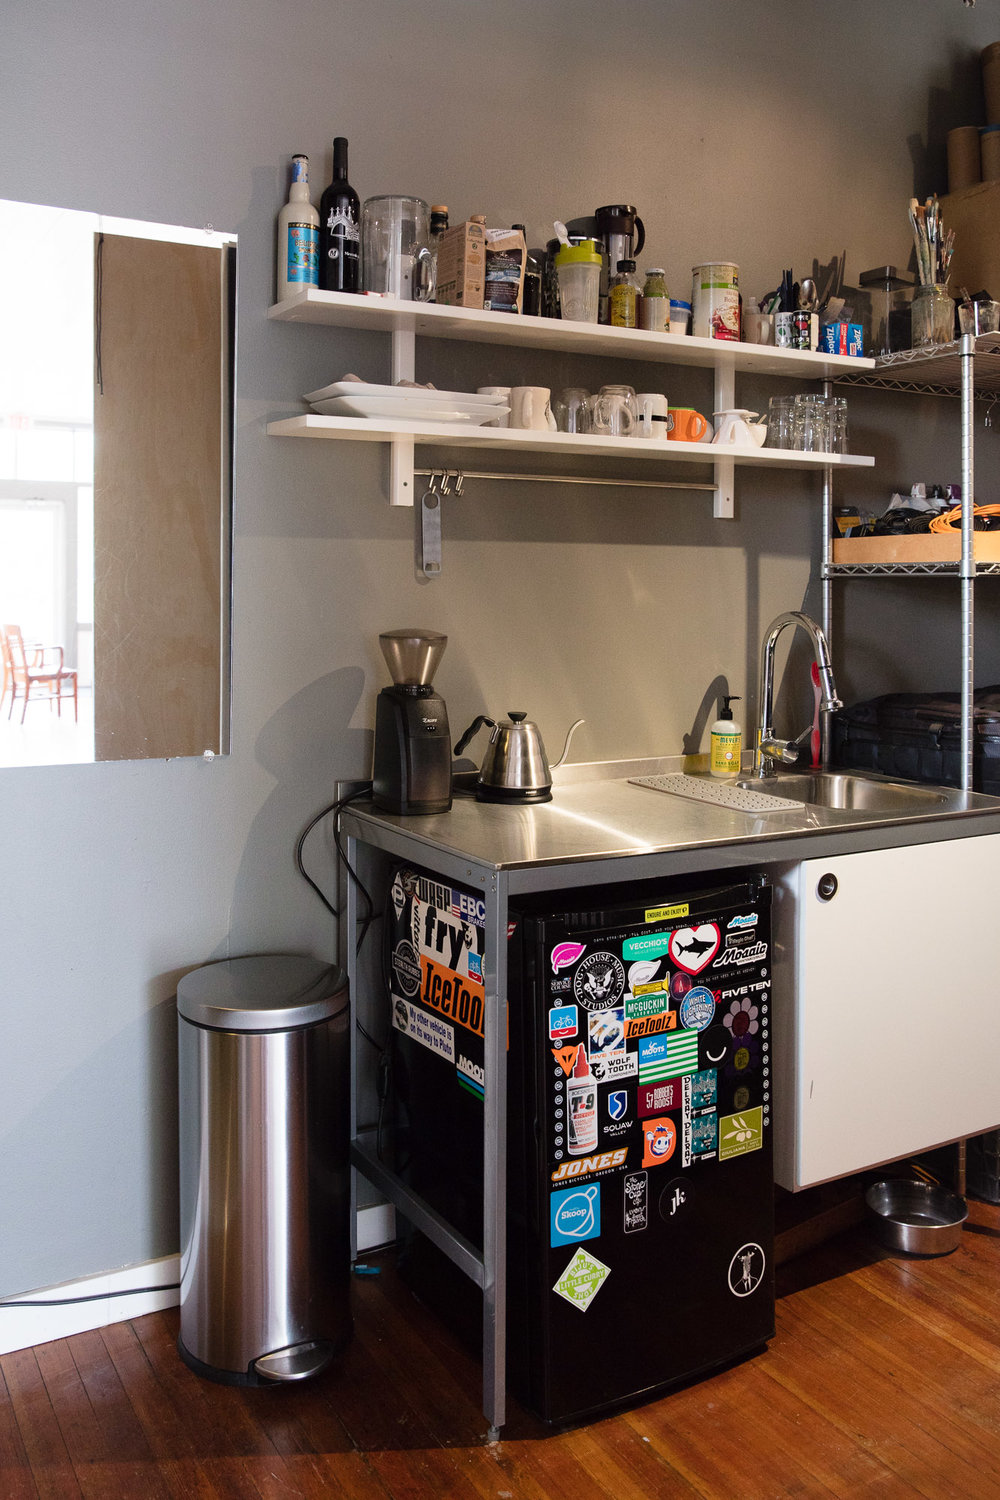 Small kitchenette with sink, coffee goods, and mini fridge.